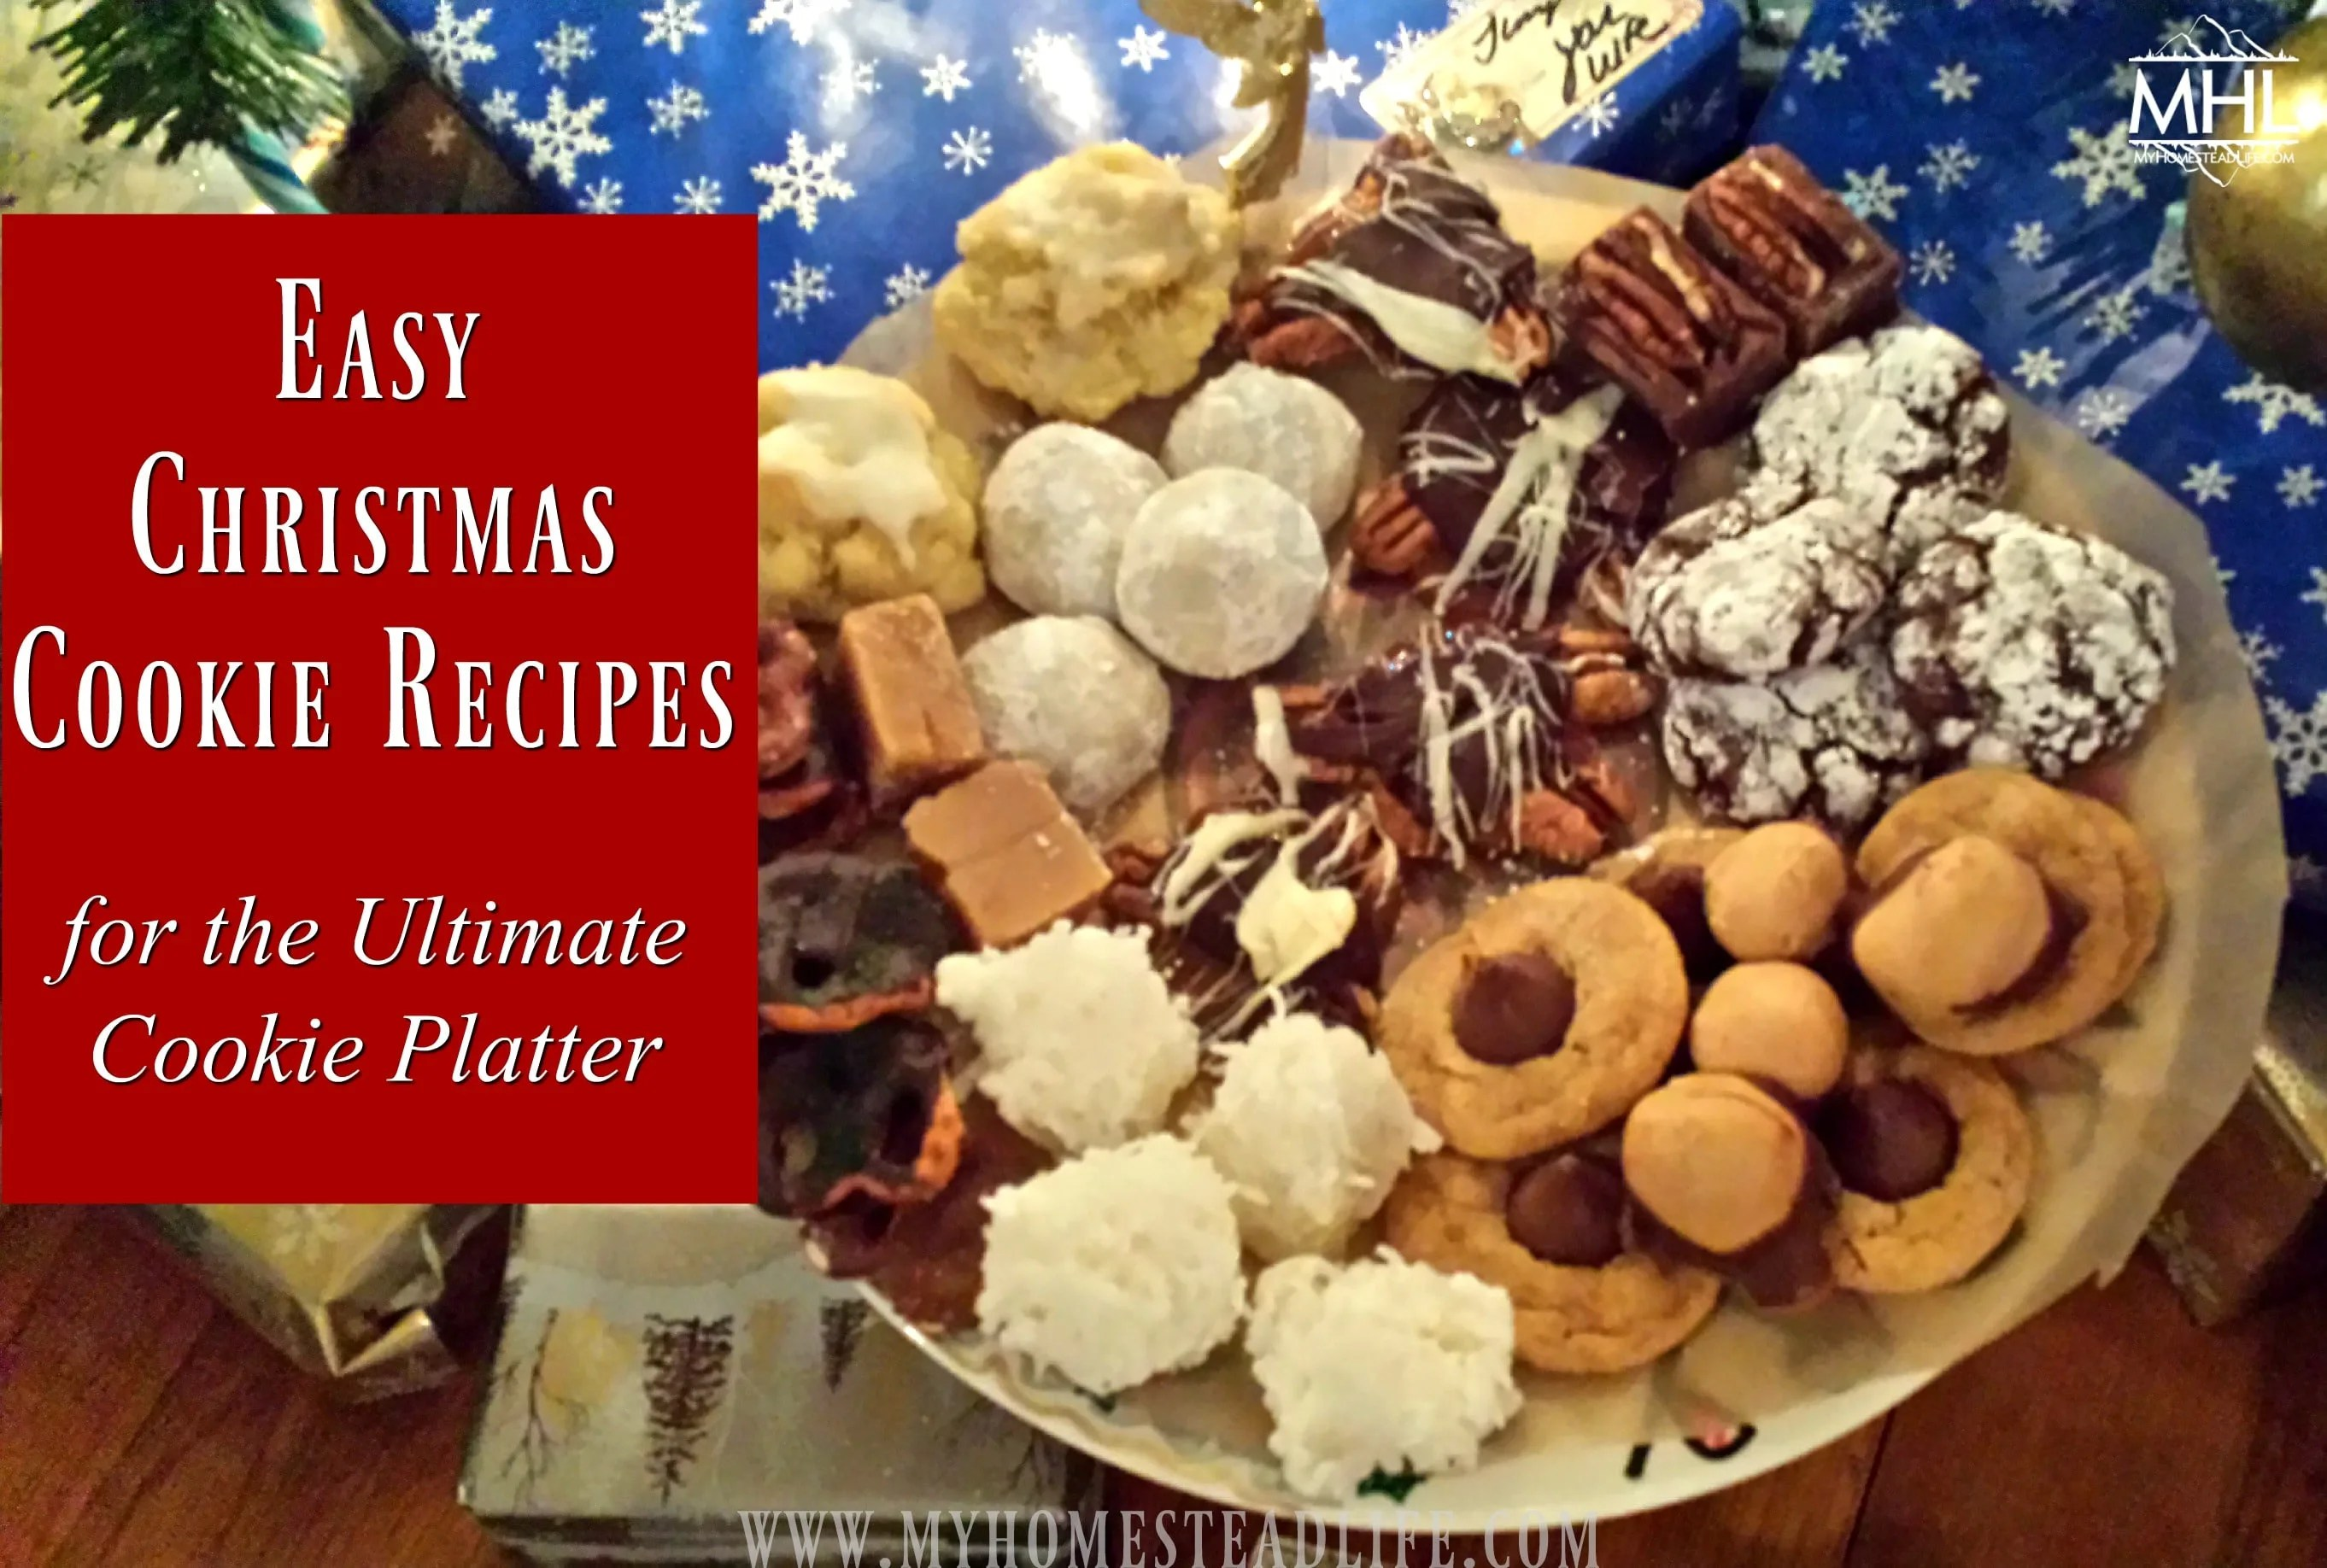 Want To Create The Ultimate Cookie Platter That Old Saint Nick Himself Could Not Resist Then Follow These Easy Christmas Cookies Recipes For Delicious And